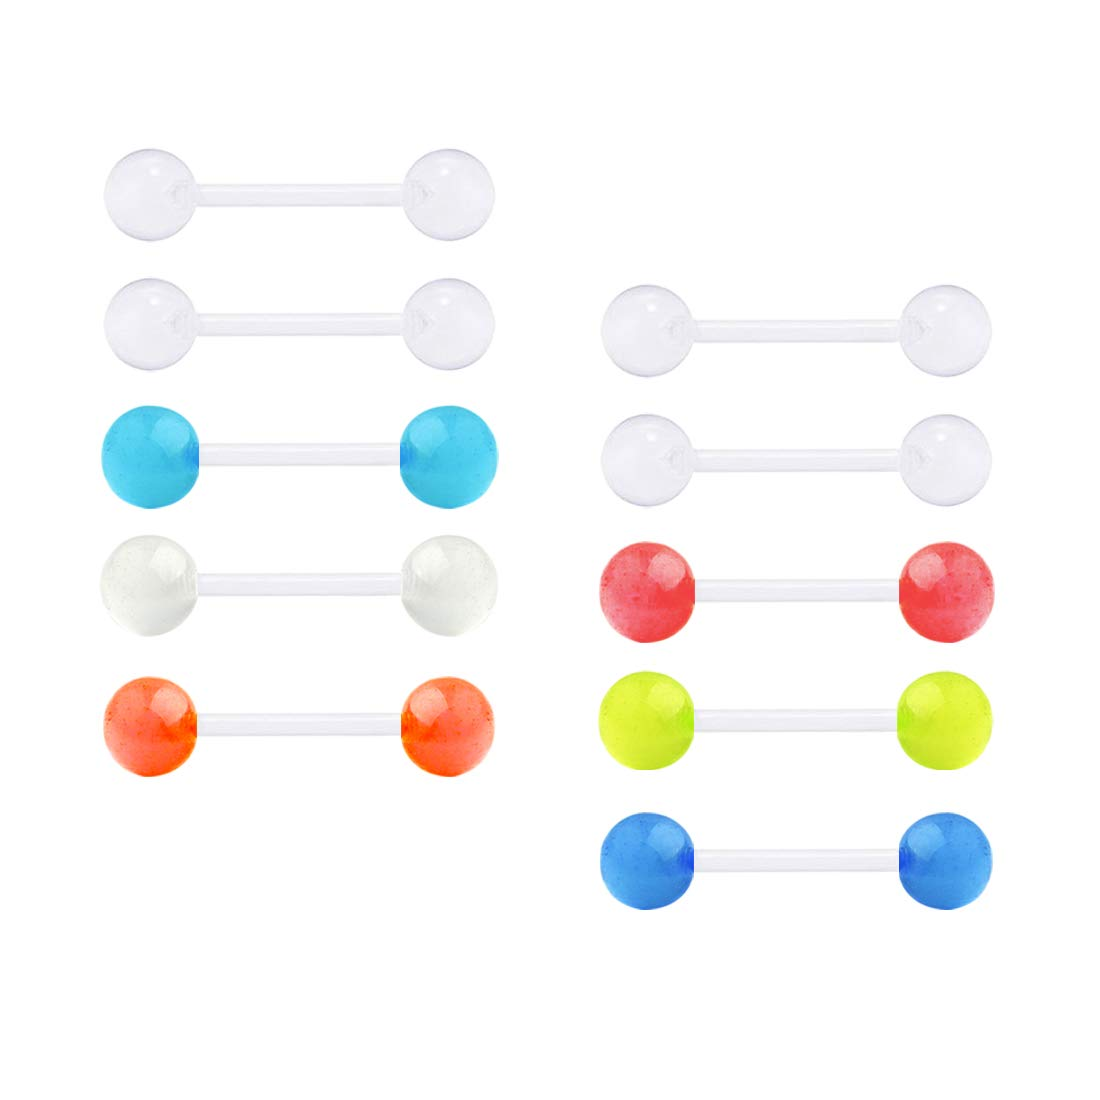 MODRSA 14G Clear Curved Barbell Retainers Belly Button Rings Plastic Tongue Eyebrow Rings Flexible Navel Piercing Curved Bar Retainer for Work Surgery 12mm 14mm 16mm 18mm